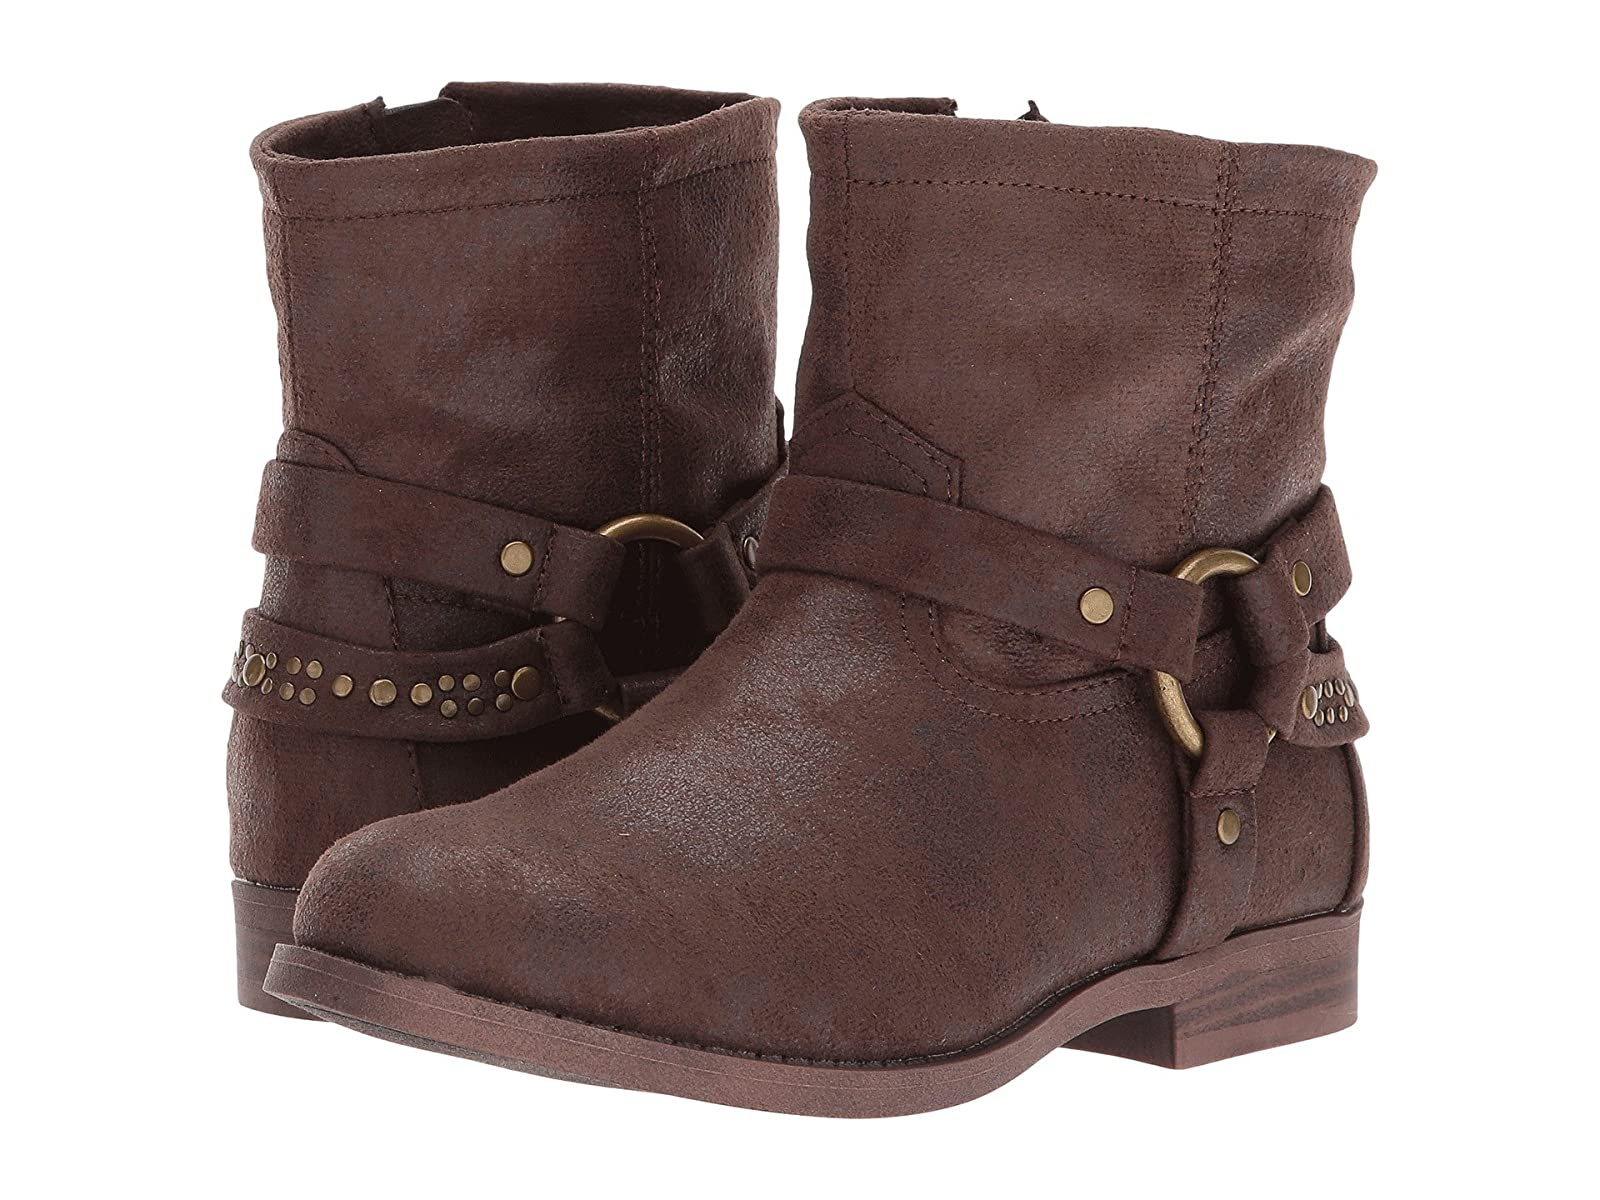 Frye Kids Harness Strappy (Little Kid/Big Kid)Affordable and distinctive shoes